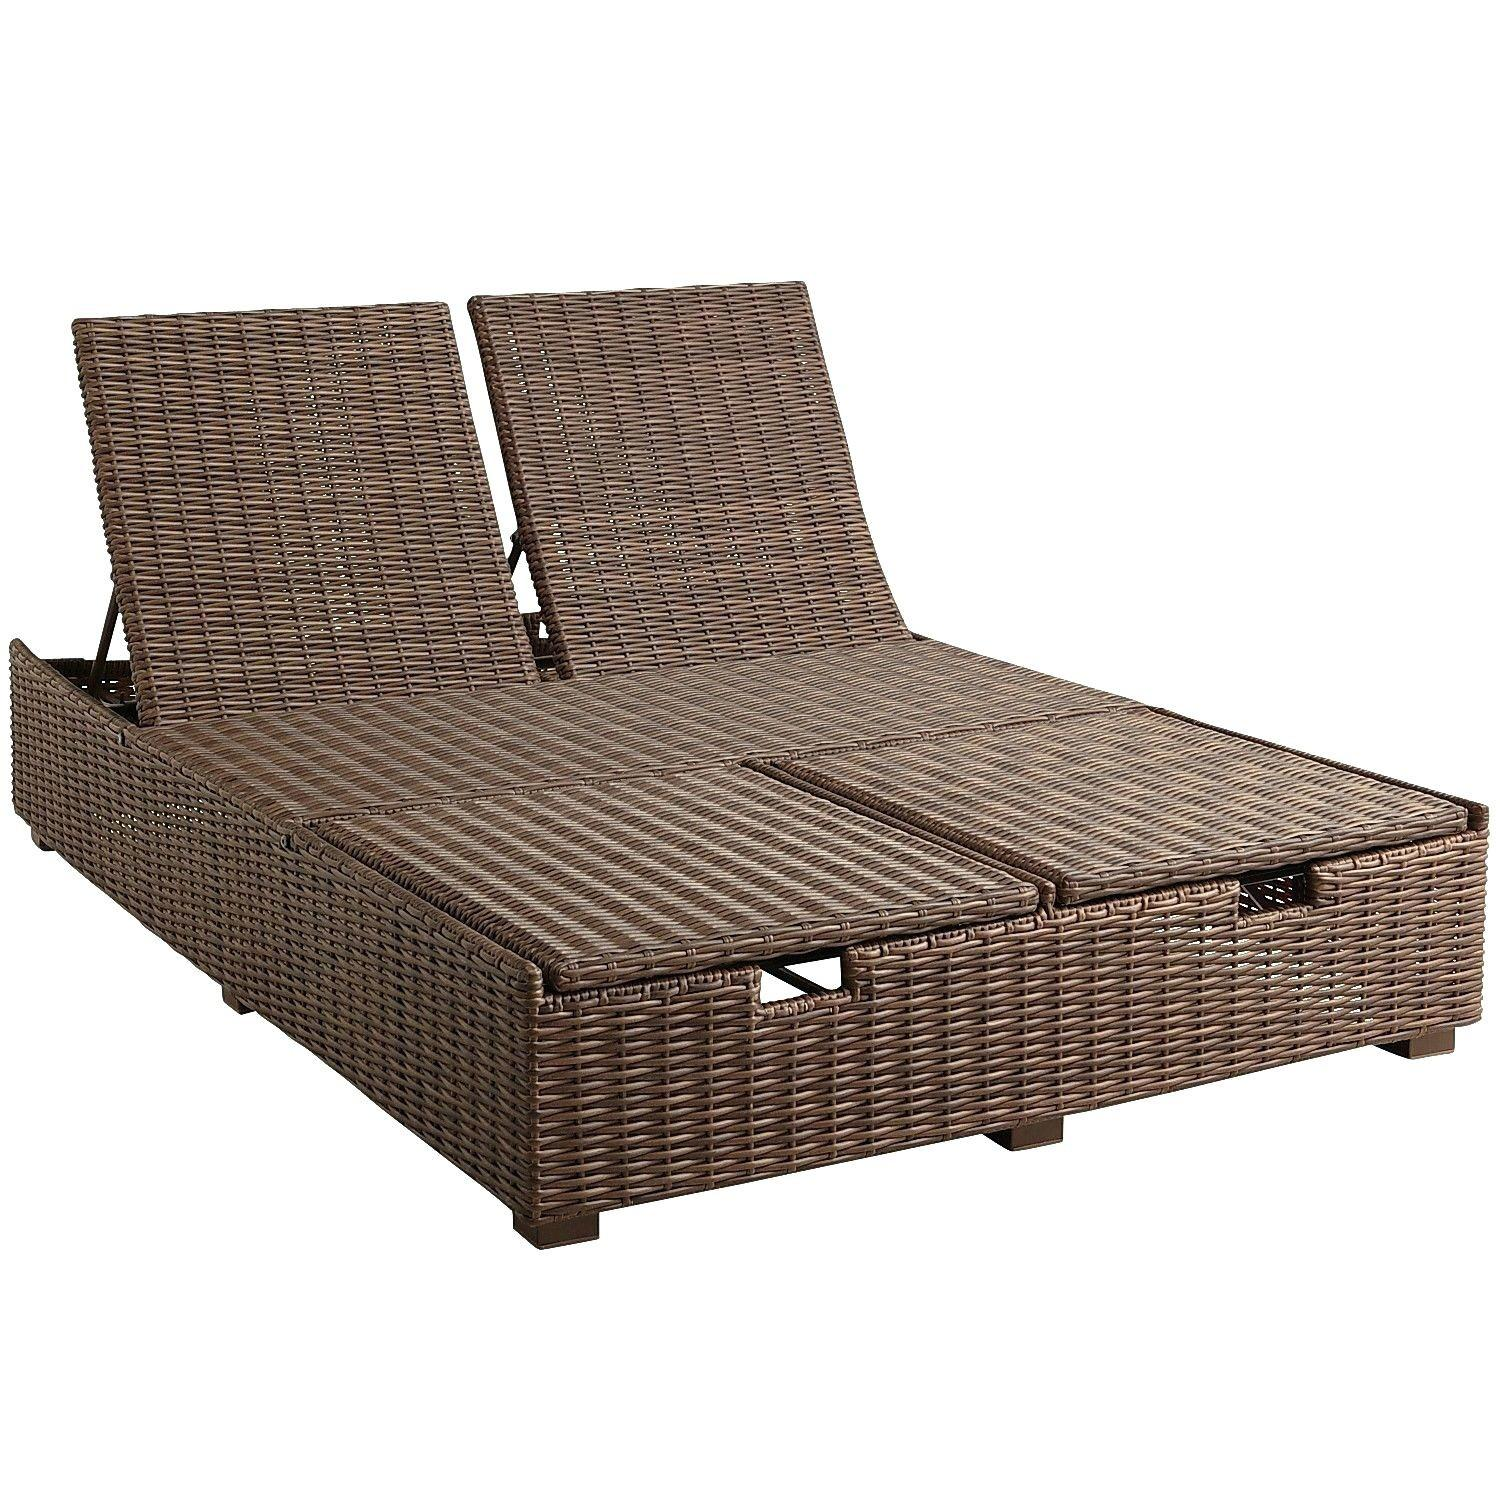 Double Chaise Lounge Cushions Mariaalcocer